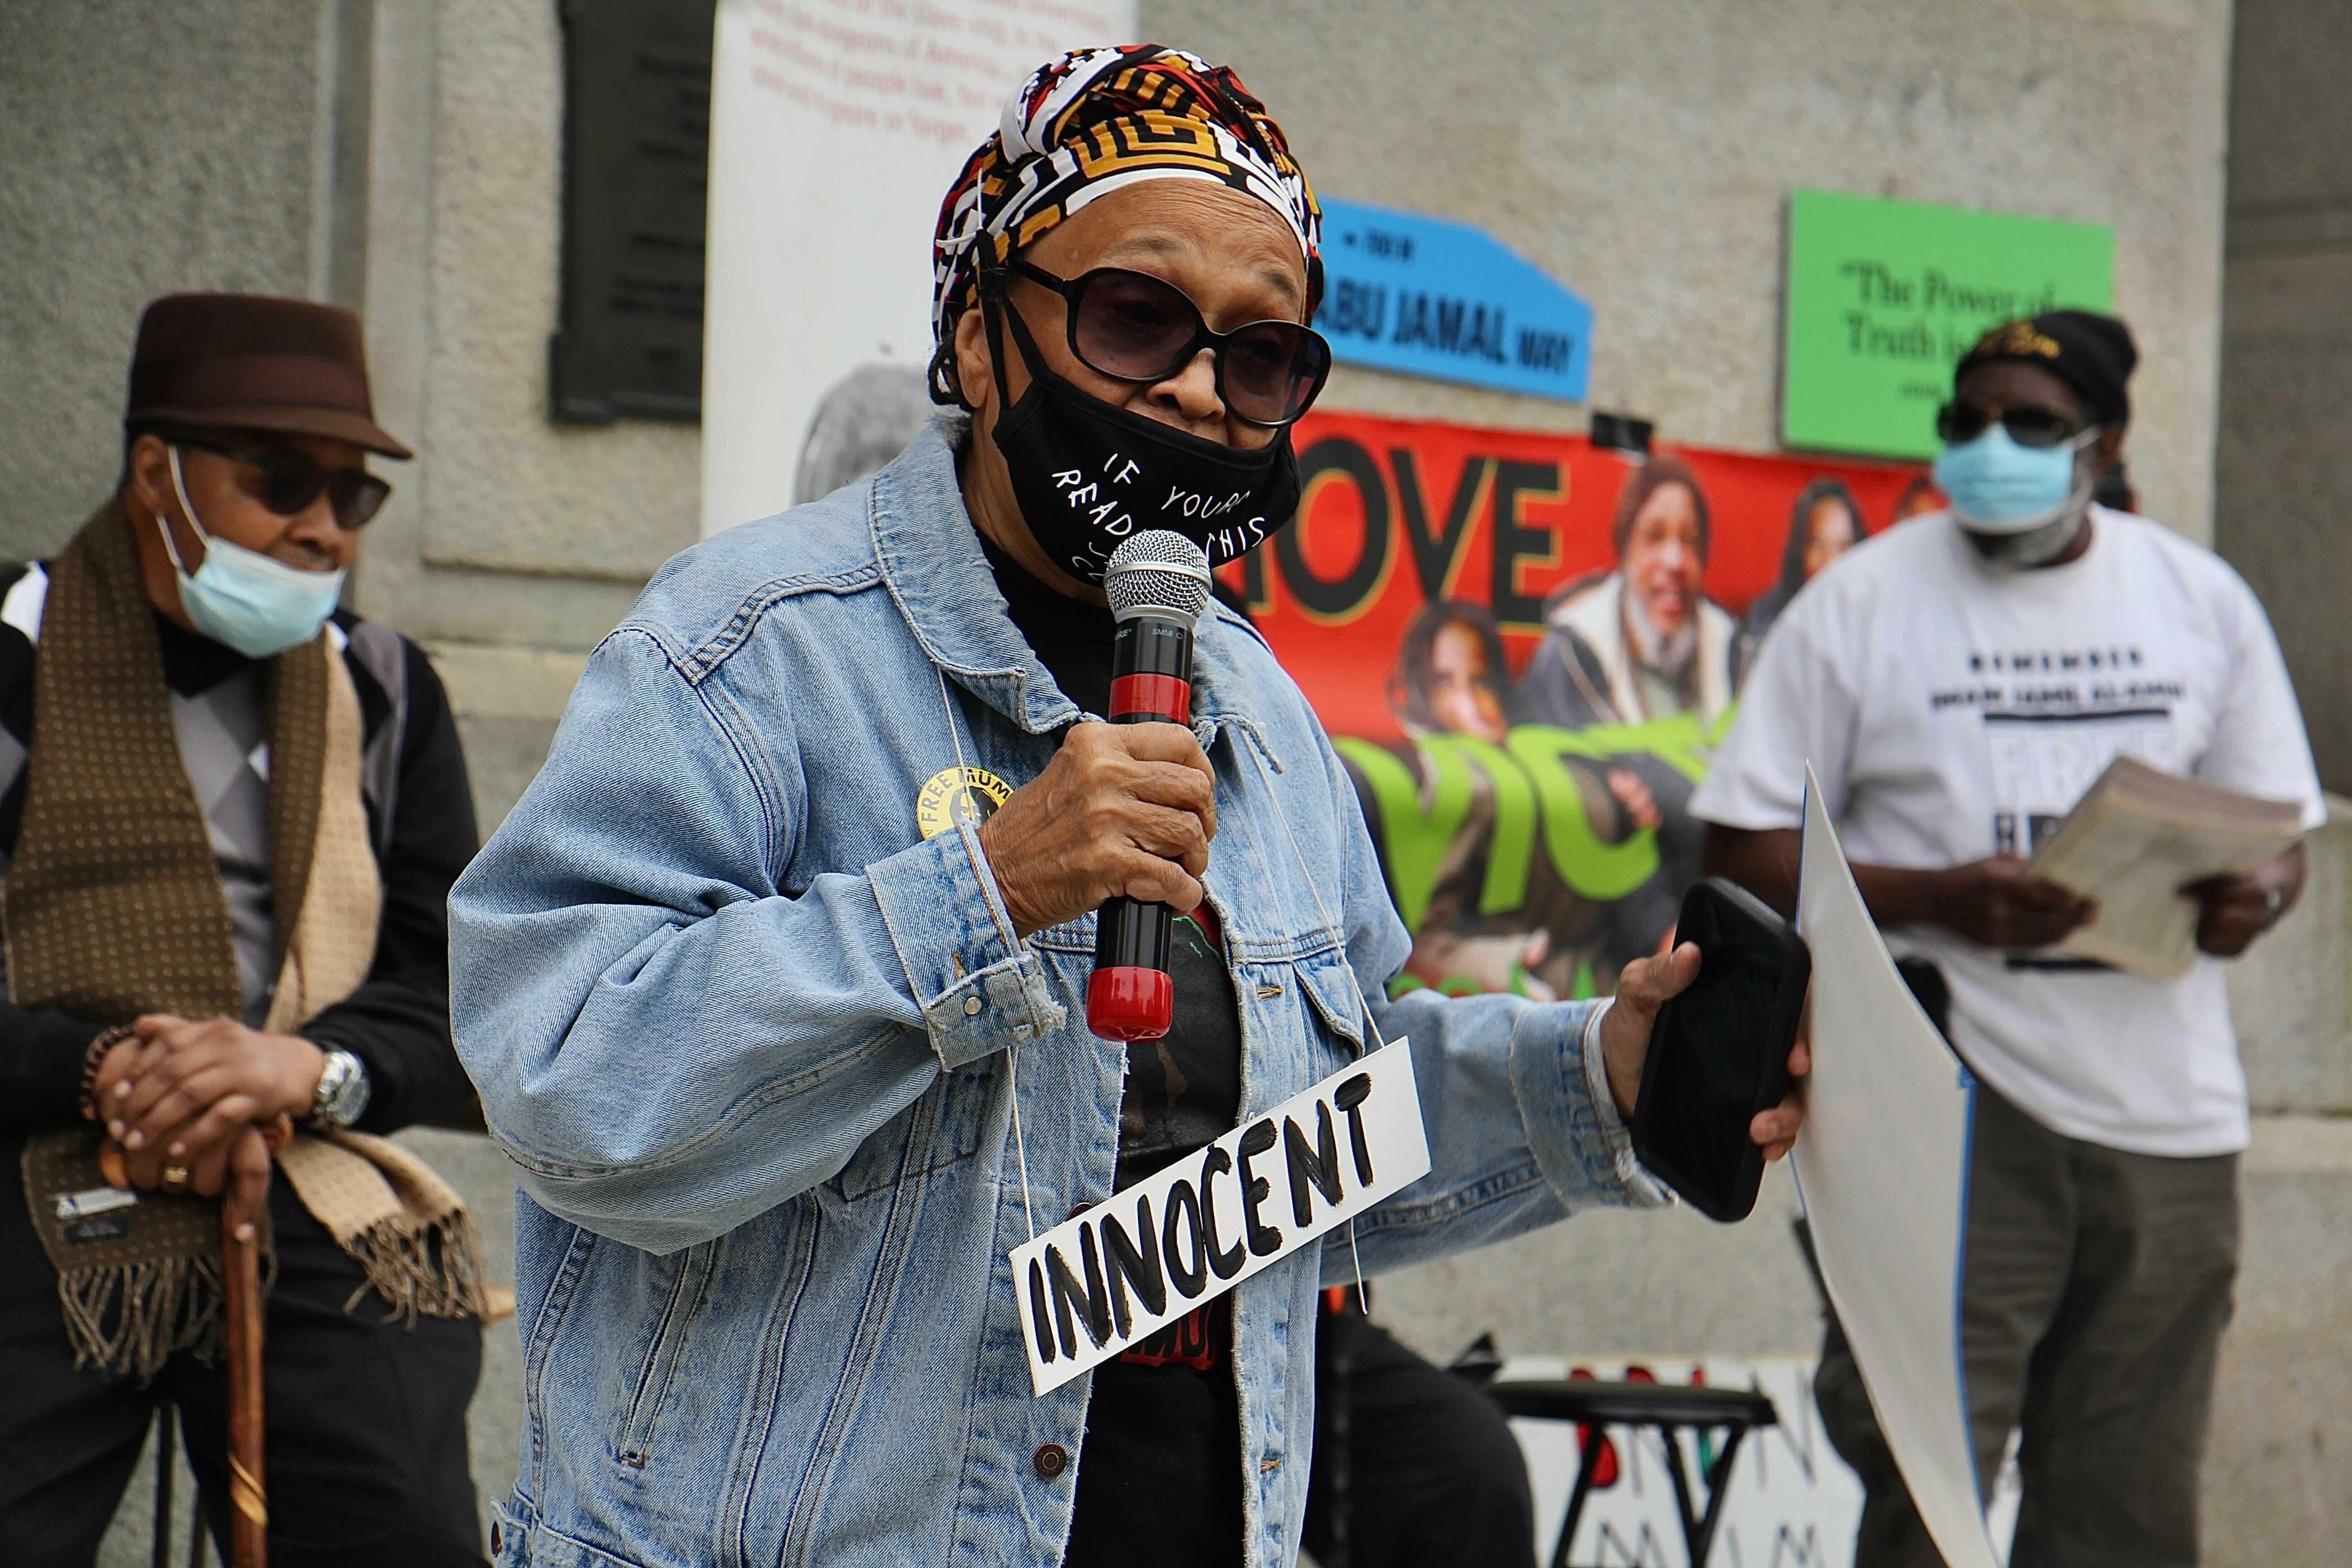 Pam Africa calls for the release of Mumia Abu-Jamal during a rally at City Hall. (Emma Lee/WHYY)